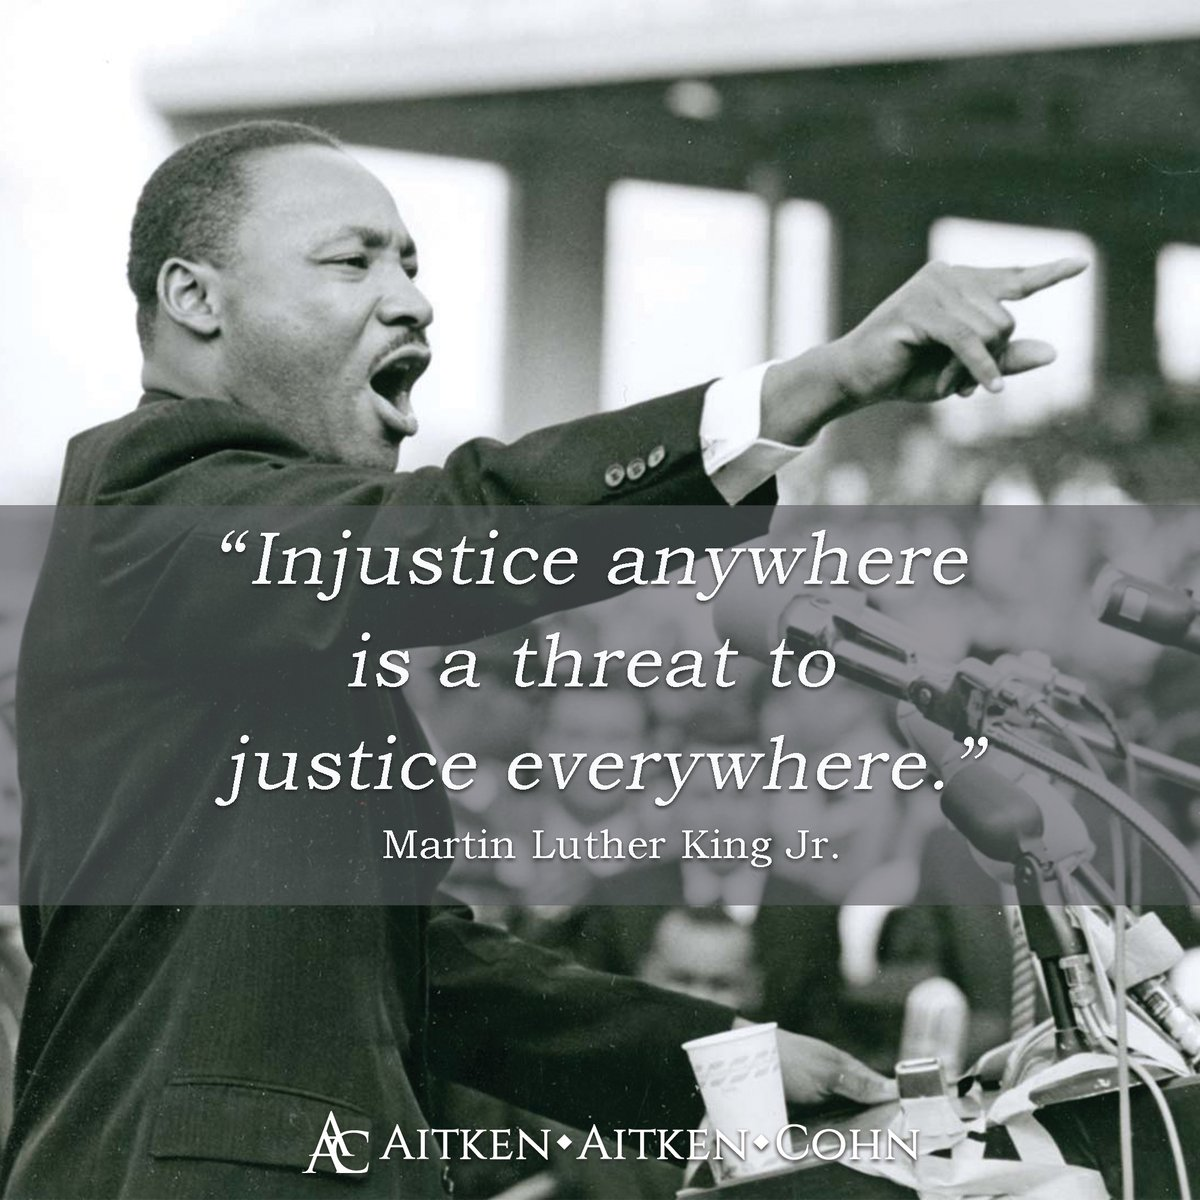 Today, Aitken Aitken Cohn remembers the legacy and indelible mark Dr. Martin Luther King Jr. left.  #MLKDay #MartinLutherKingDay